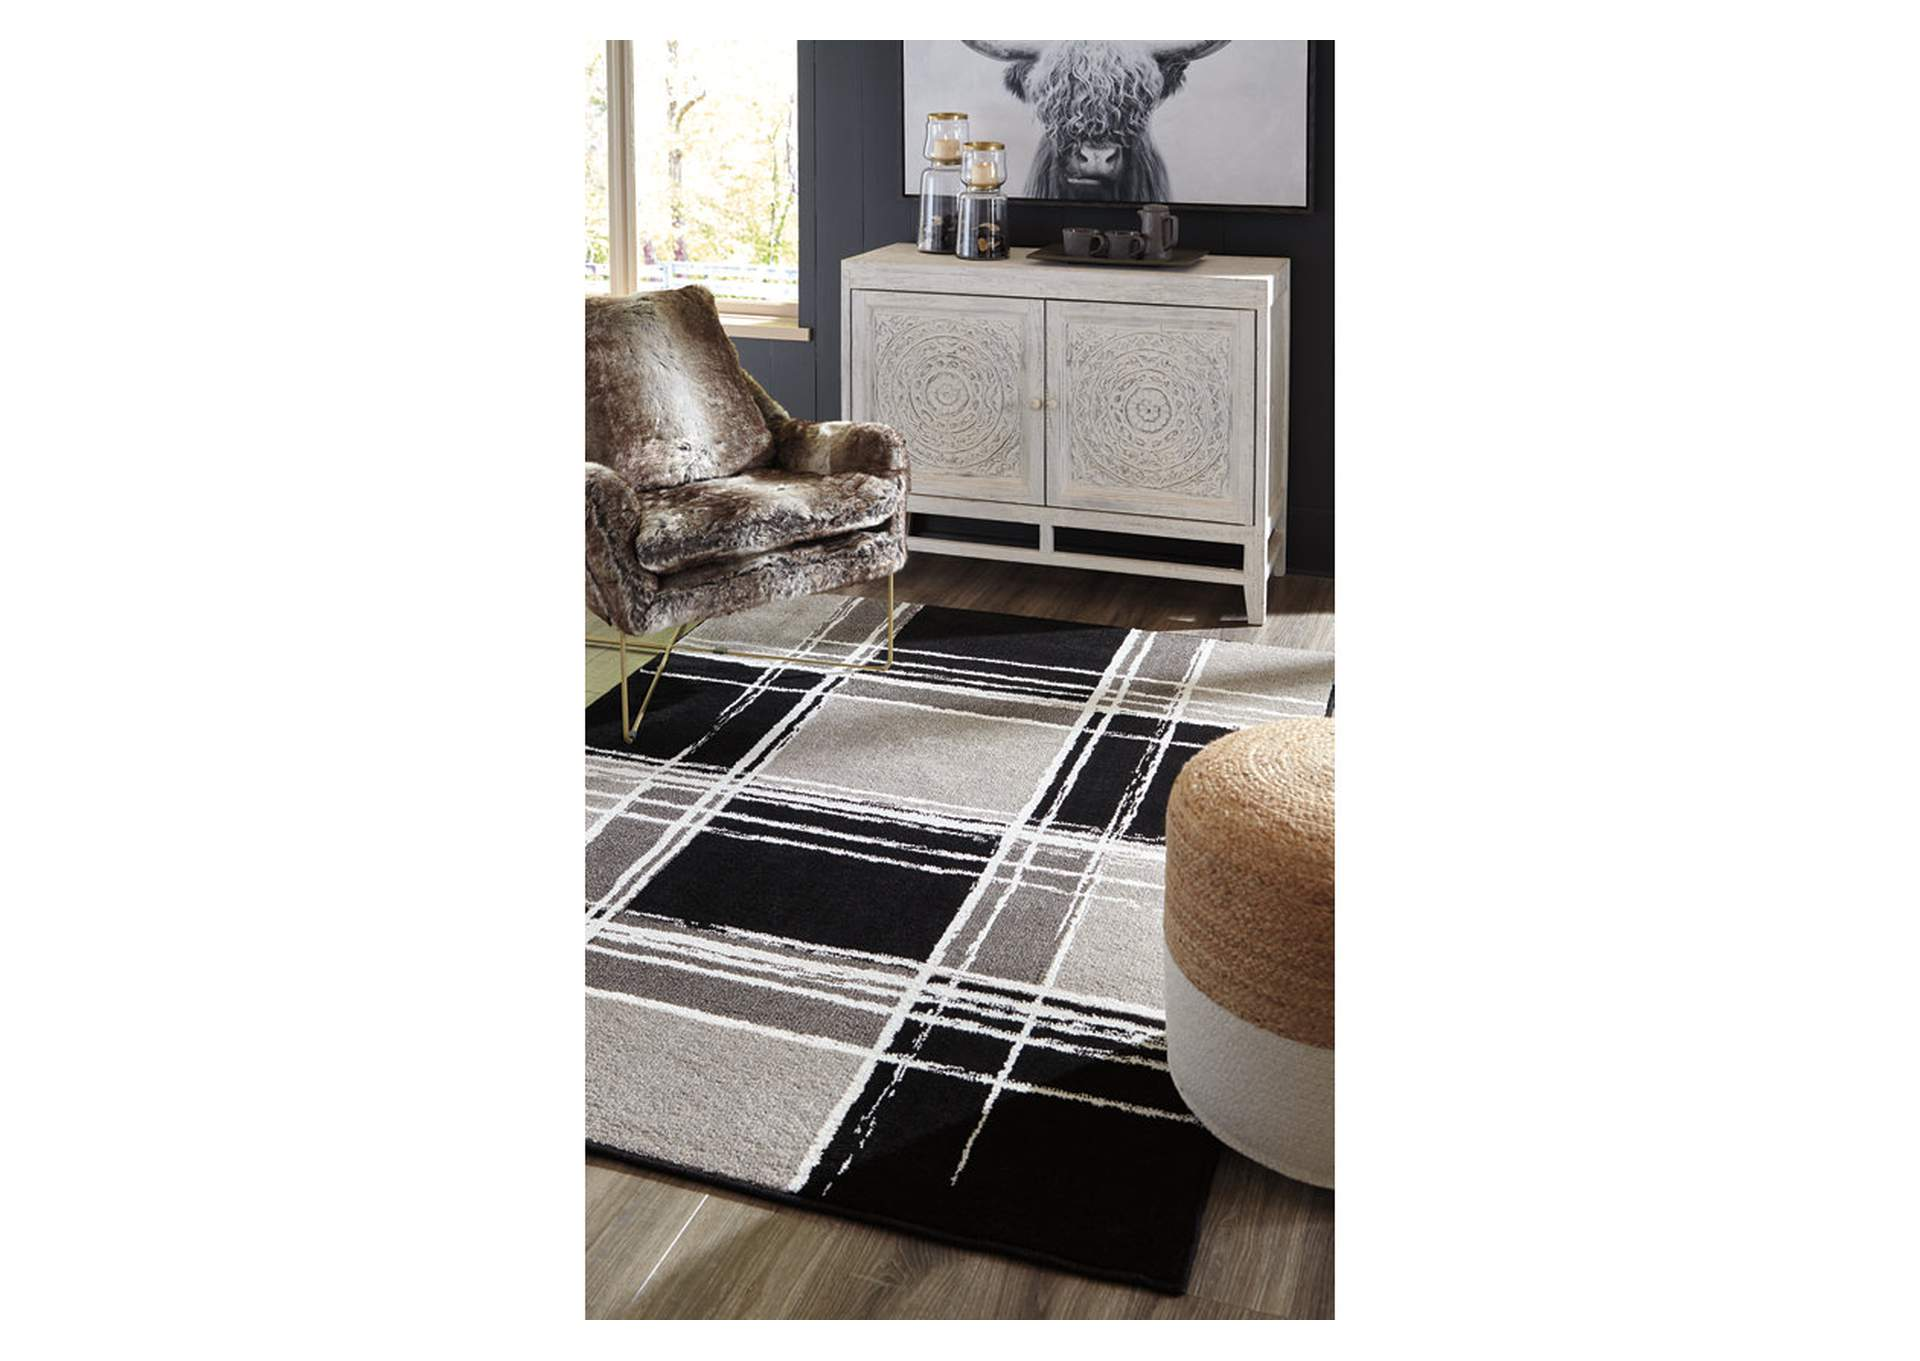 Ramy Medium Black/White Rug,Signature Design By Ashley